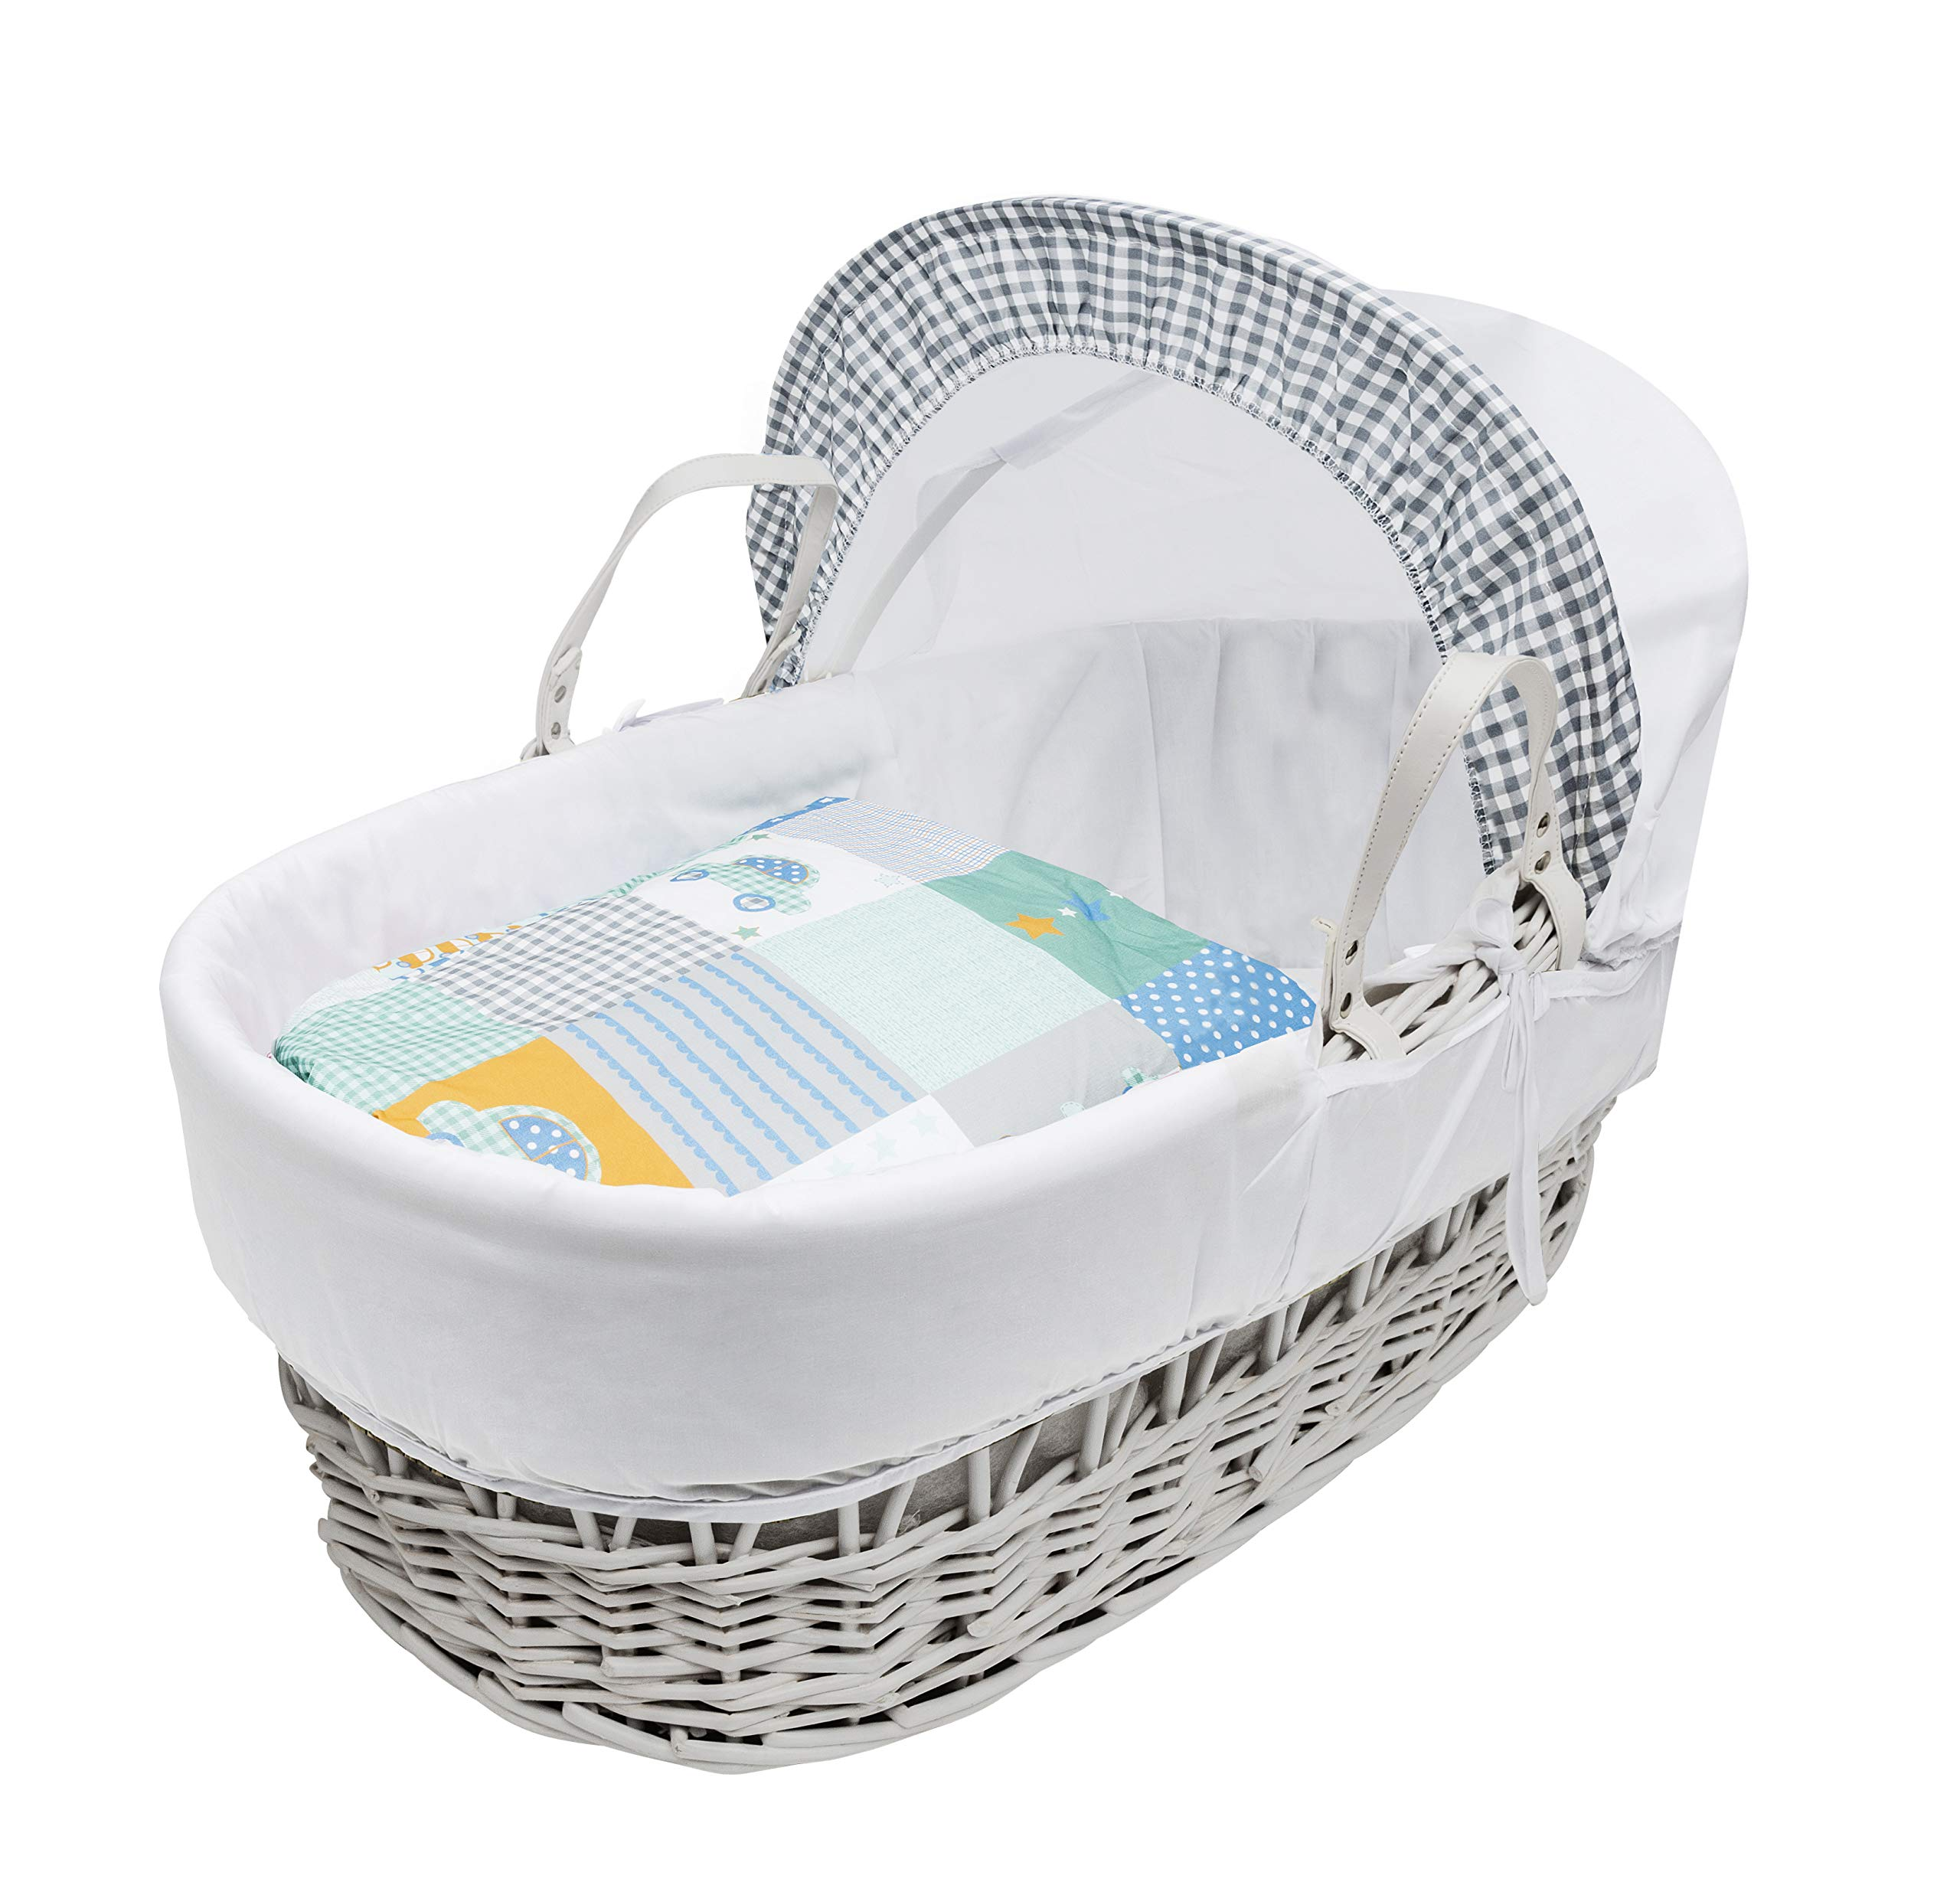 Vintage Cars White Wicker Moses Basket with Deluxe White Rocking Stand Elegant Baby Vintage style Elegant Baby Exclusive moses basket Opulent cotton blend fabric with a luxurious soft padded surround Unique adjustable deluxe rocking stand with soothing front to back motion 3